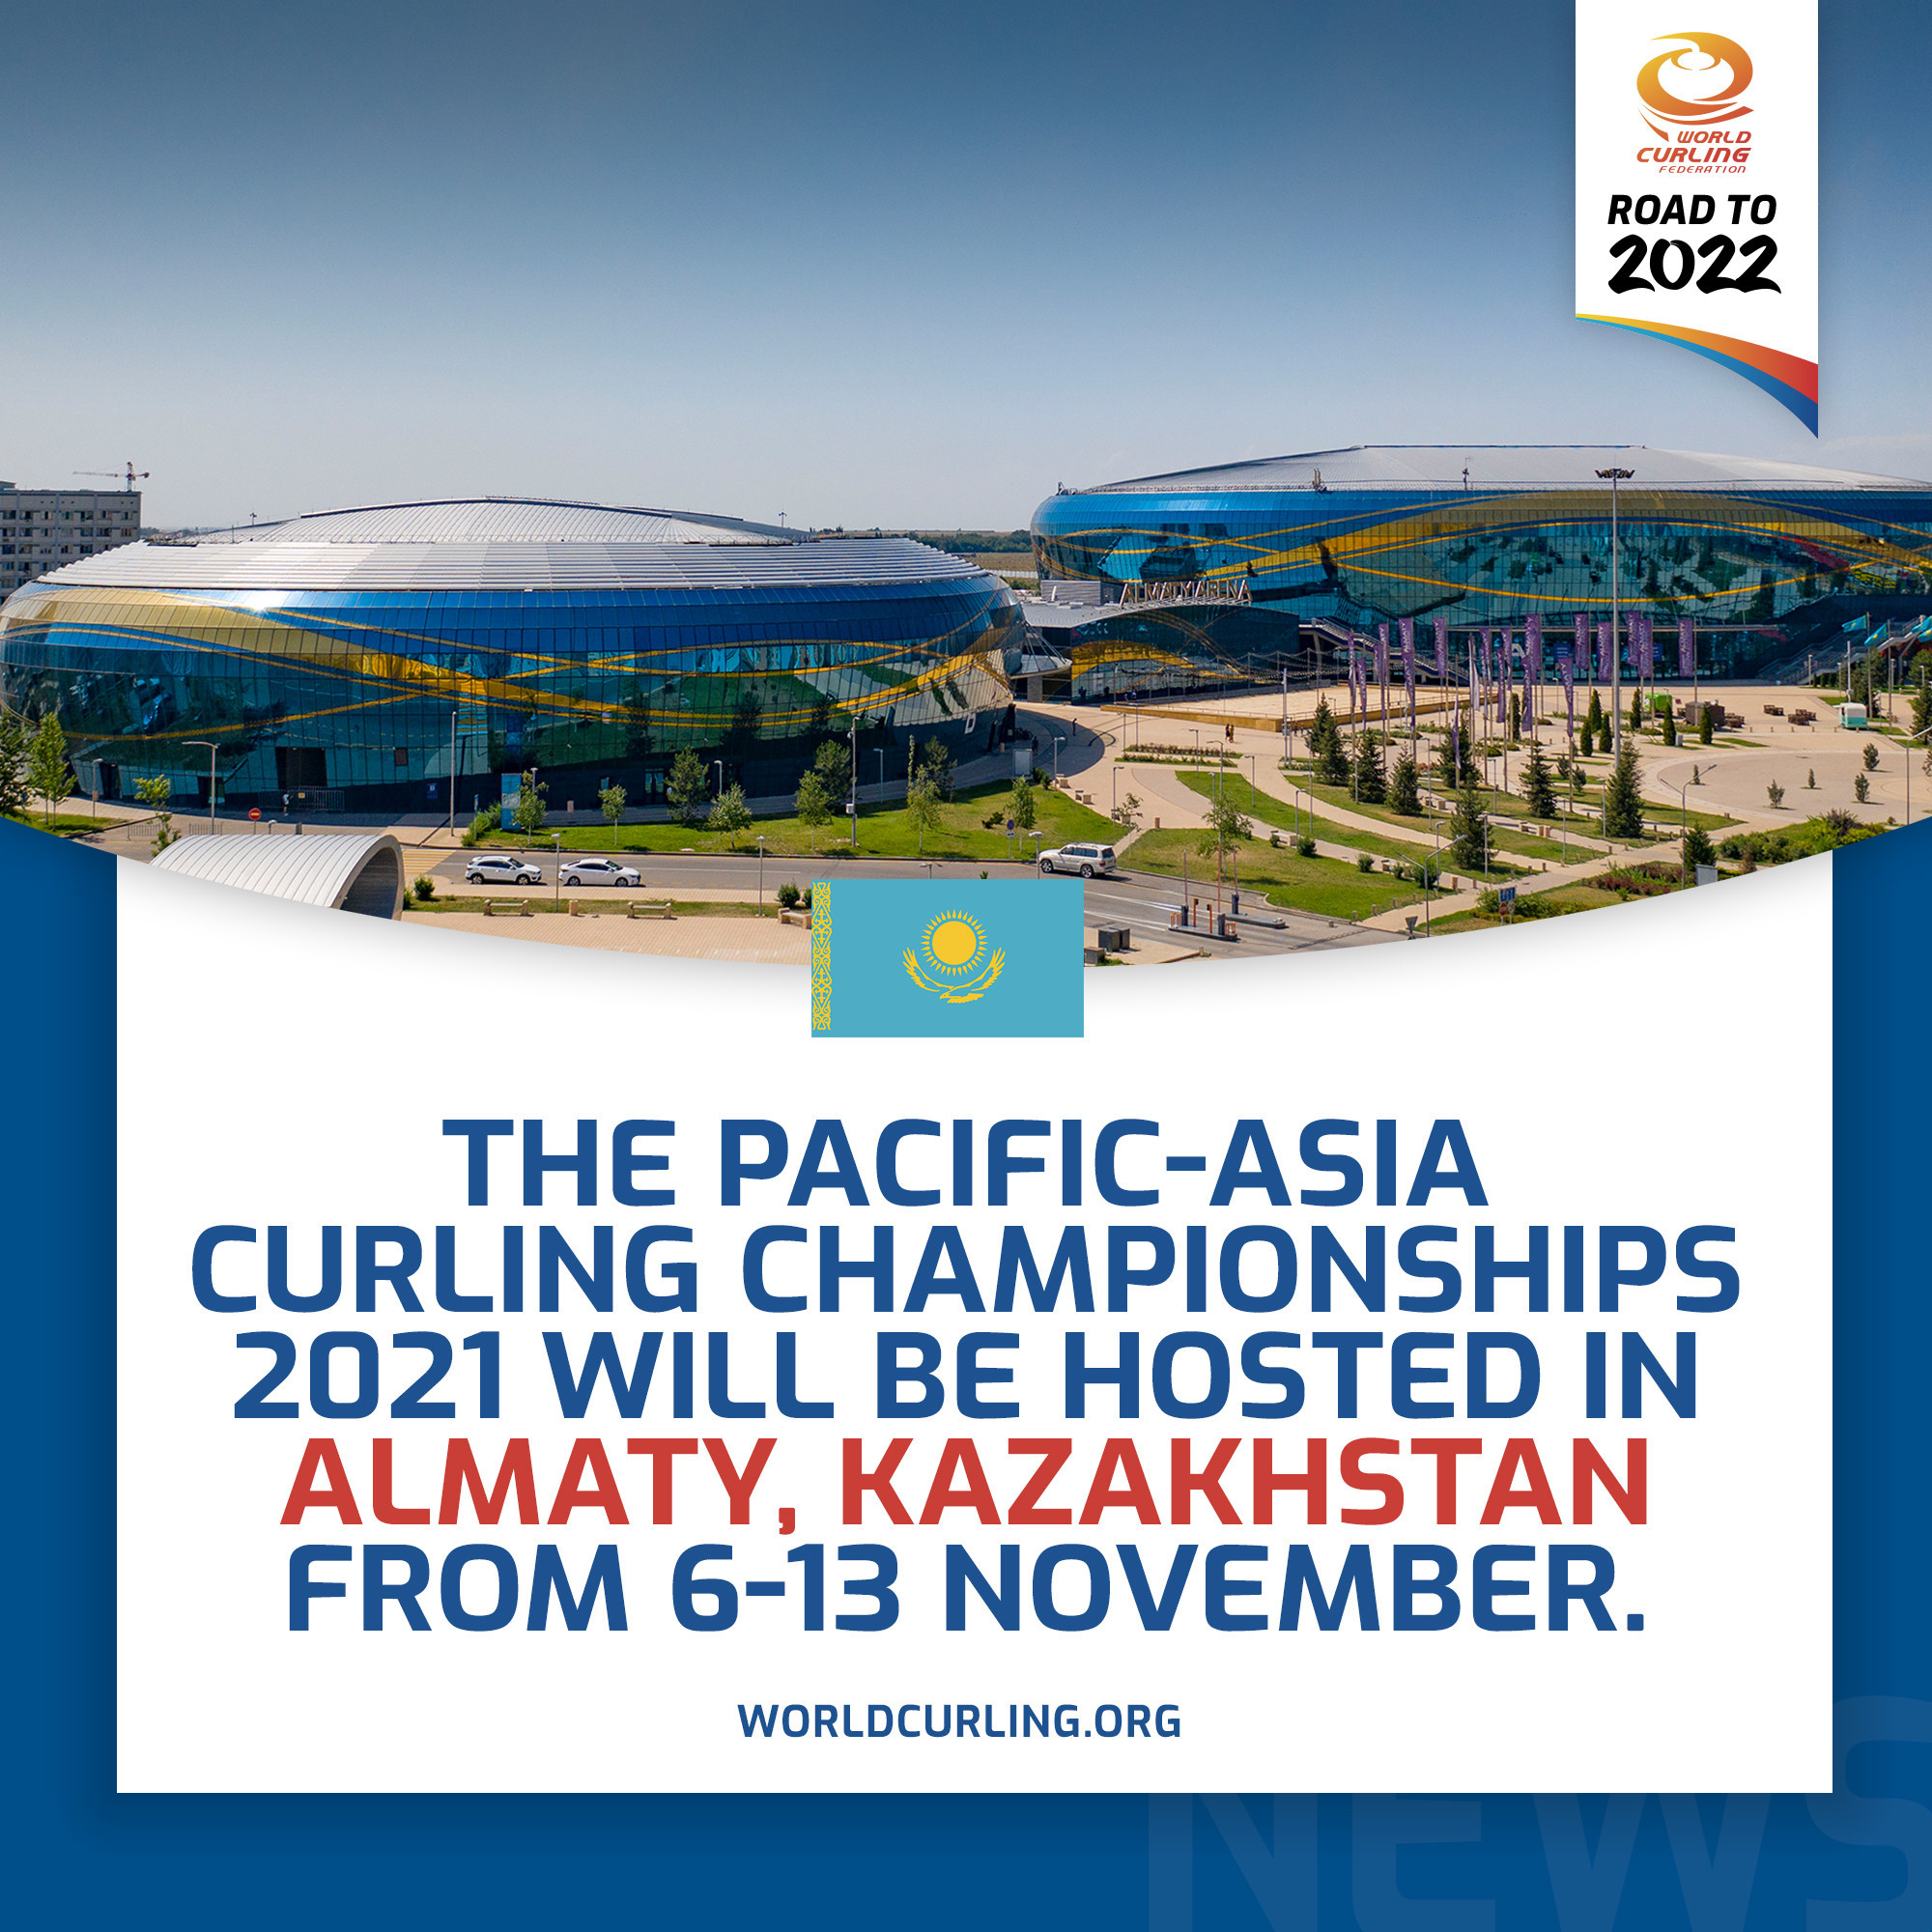 Almaty to host 2021 Pacific-Asia Curling Championships